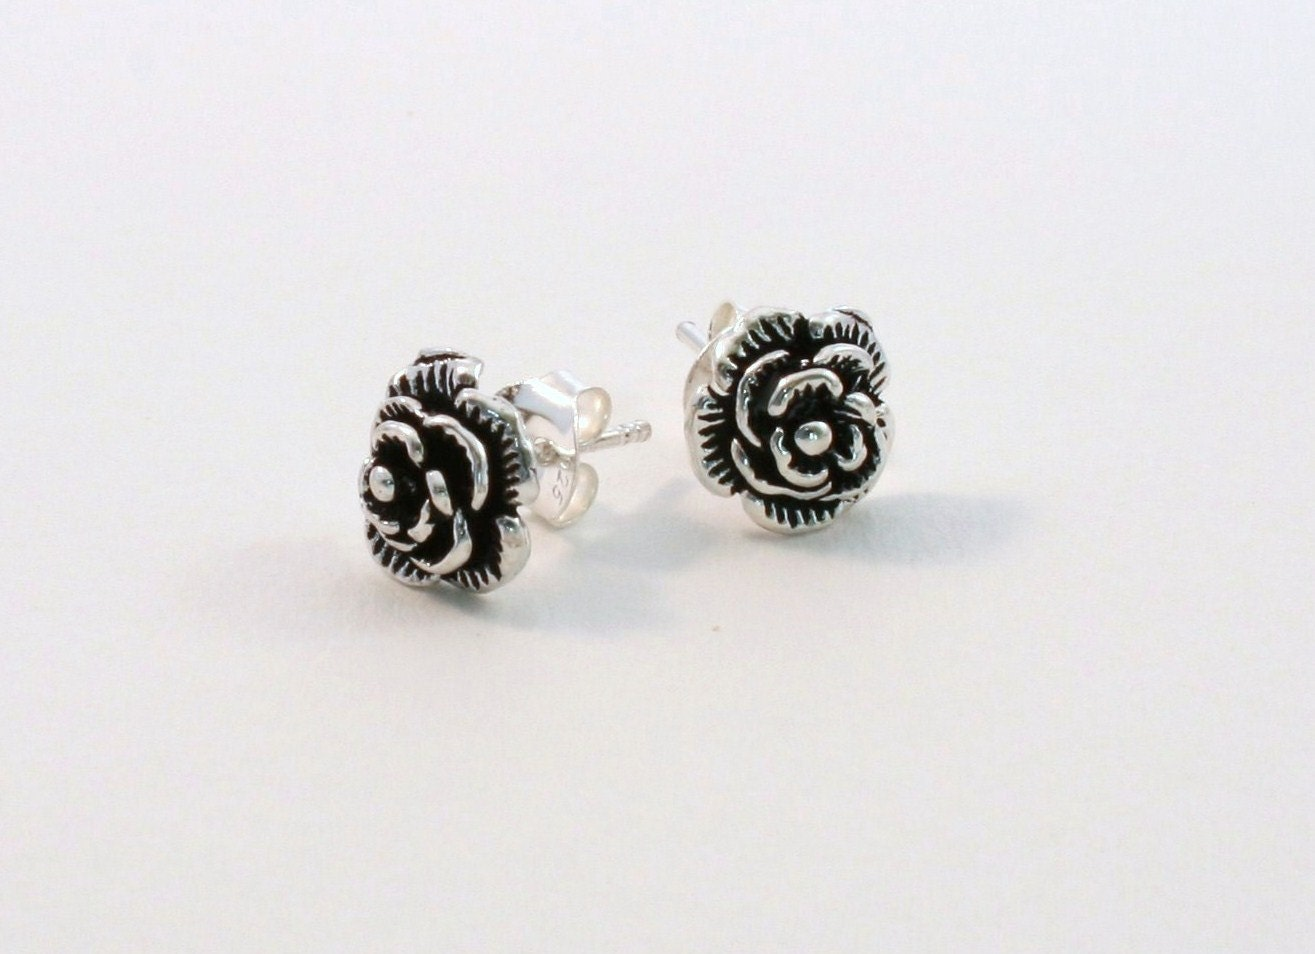 Simple stud earrings